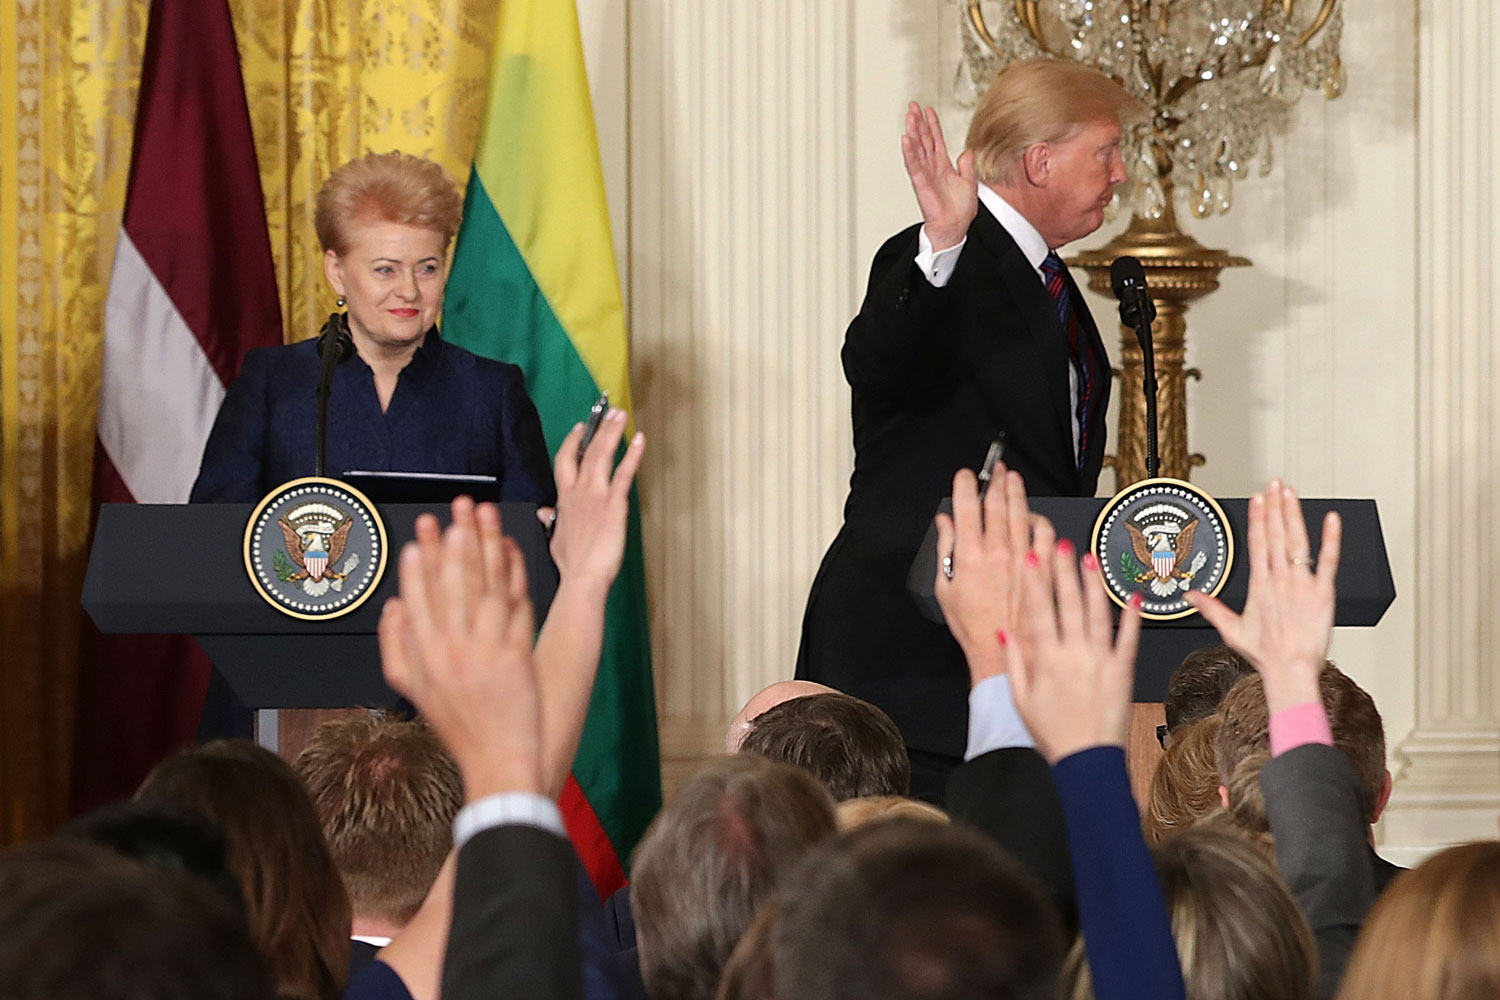 U.S. President Donald Trump waves off questions from American reporters as he leaves the stage April 3 following a news conference with Lithuanian President Dalia Grybauskaite, left, Estonian President Kersti Kaljulaid and Latvian President Raimonds Vejonis in Washington. Marking the 100th anniversary of their independence from Russia, the three Baltic heads of state took part in a summit at the White House. (Chip Somodevilla/Getty Images)